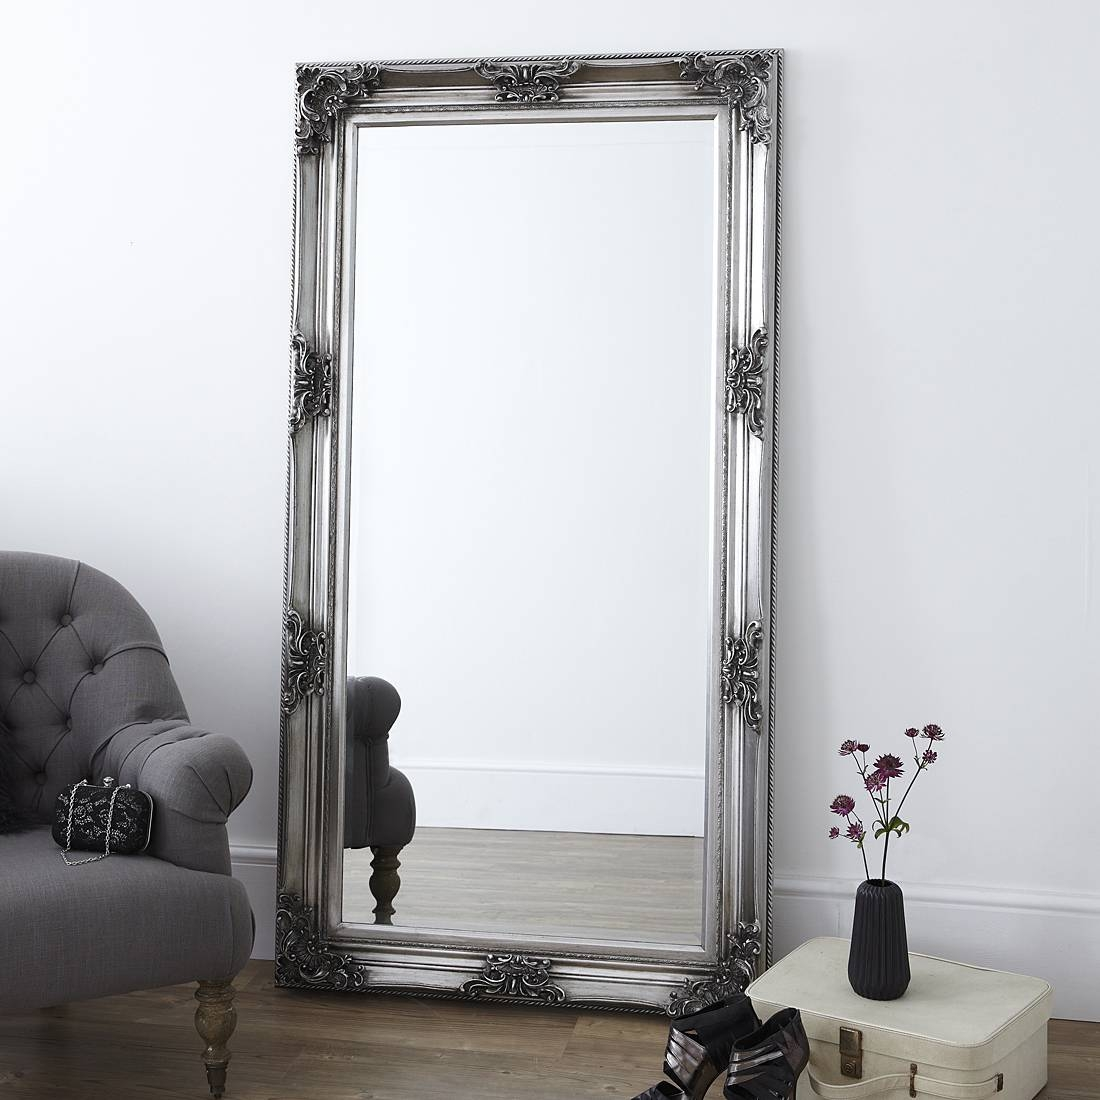 Bedroom Furniture Sets : Black Mirror Oversized Wall Mirrors Round with Extra Large Free Standing Mirrors (Image 1 of 25)